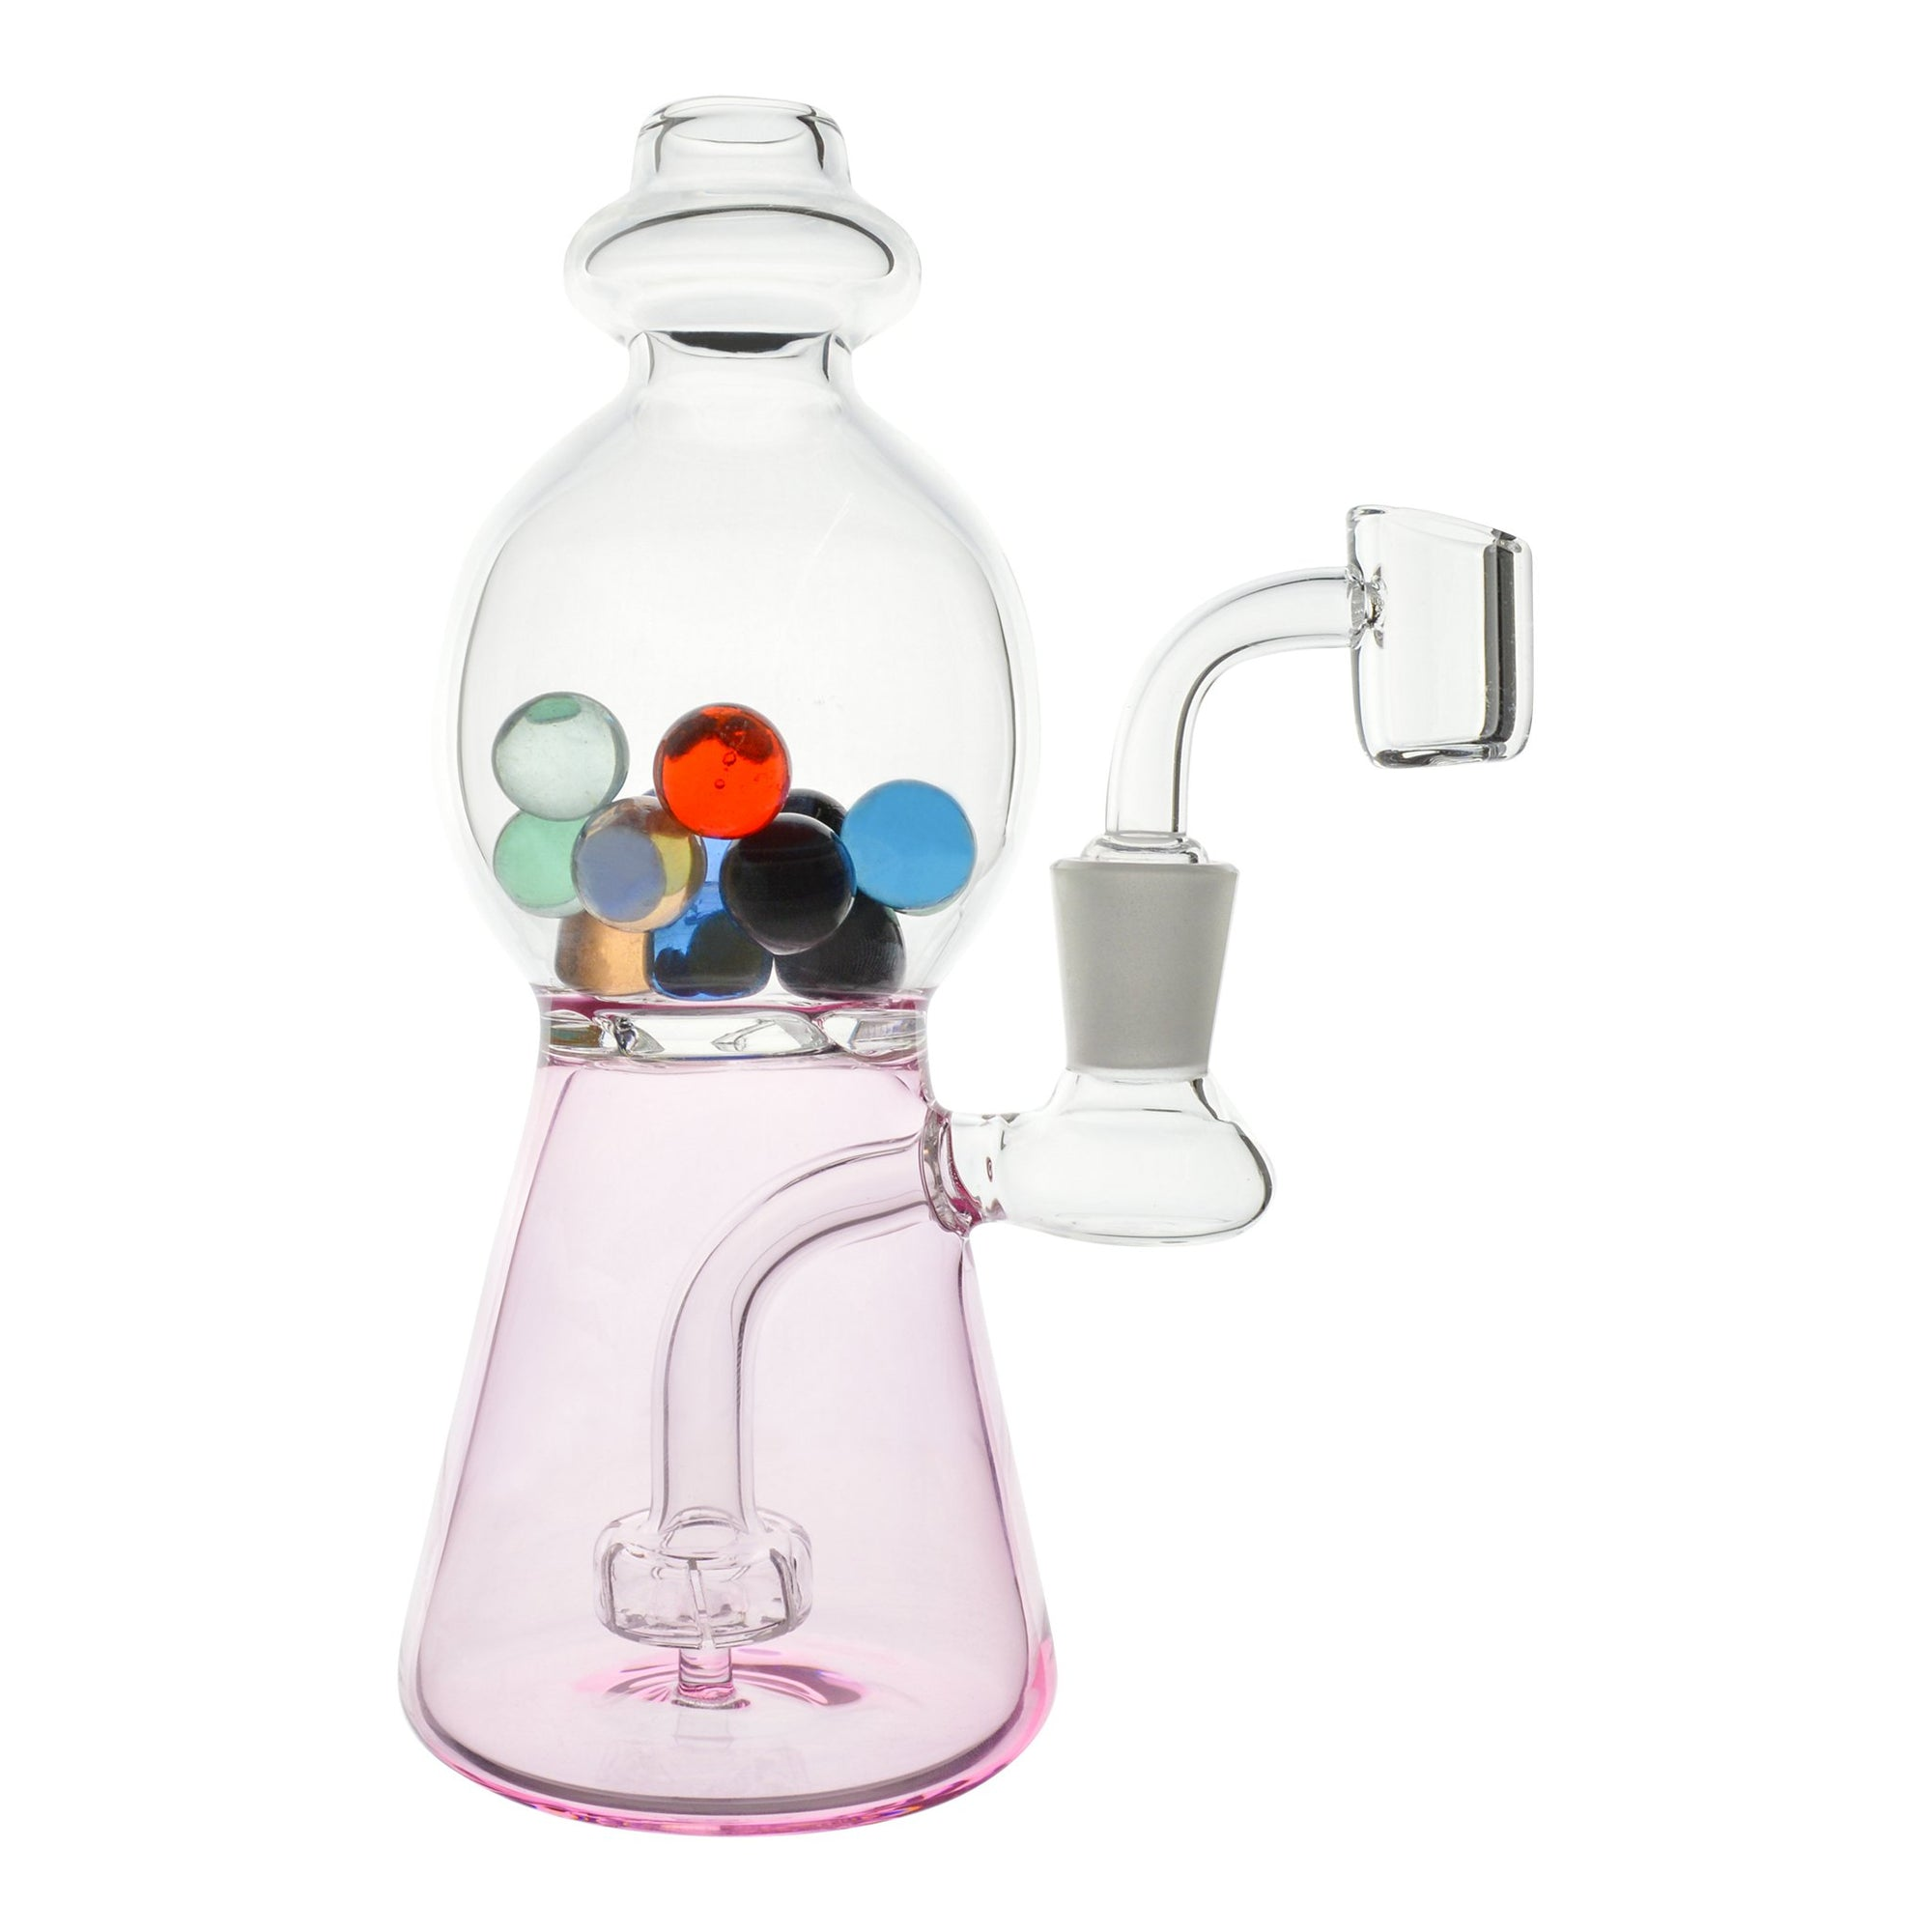 Cute 7.5 inch dab rig pink beaker shaped chamber clear sphere neck with marbles assorted colors banger on right slightly back